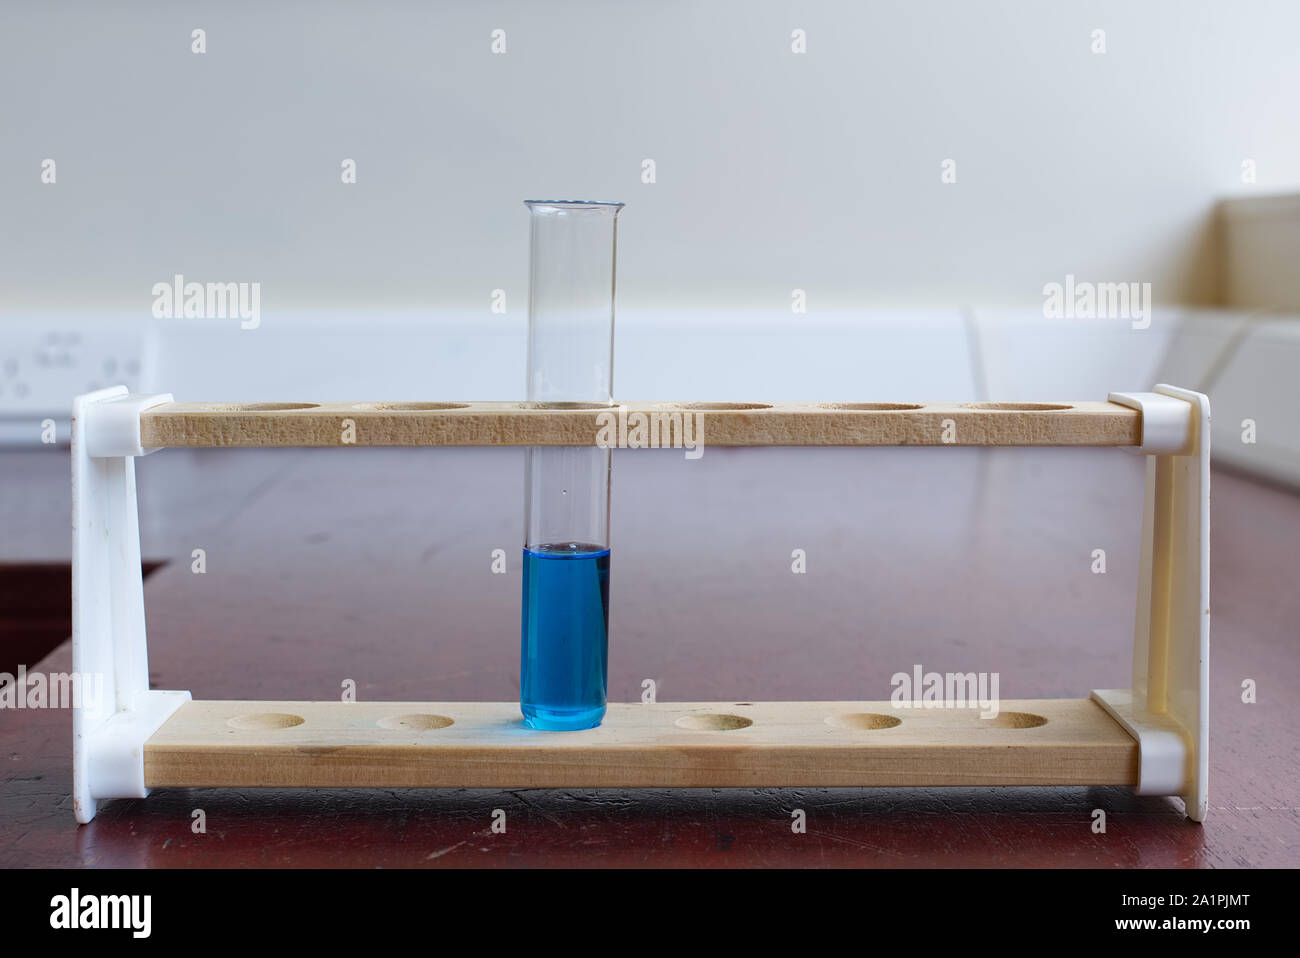 Wooden test tube rack with boiling tube of copper sulfate solution in an old school science laboratory. Science education lab concept Stock Photo